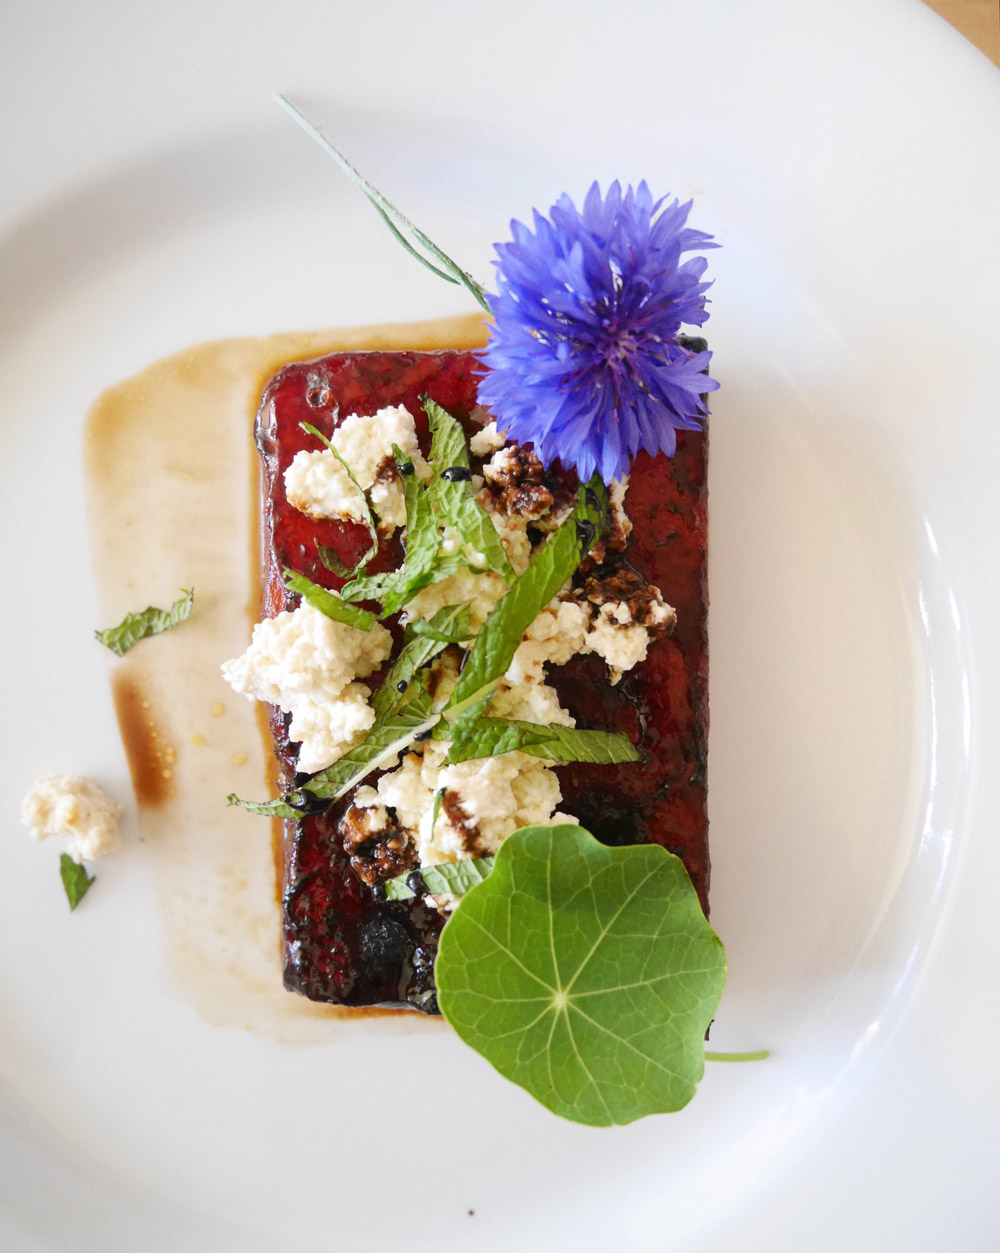 Vegan Watermelon Steak, Summer Flavor Popup with Veganizer Portland